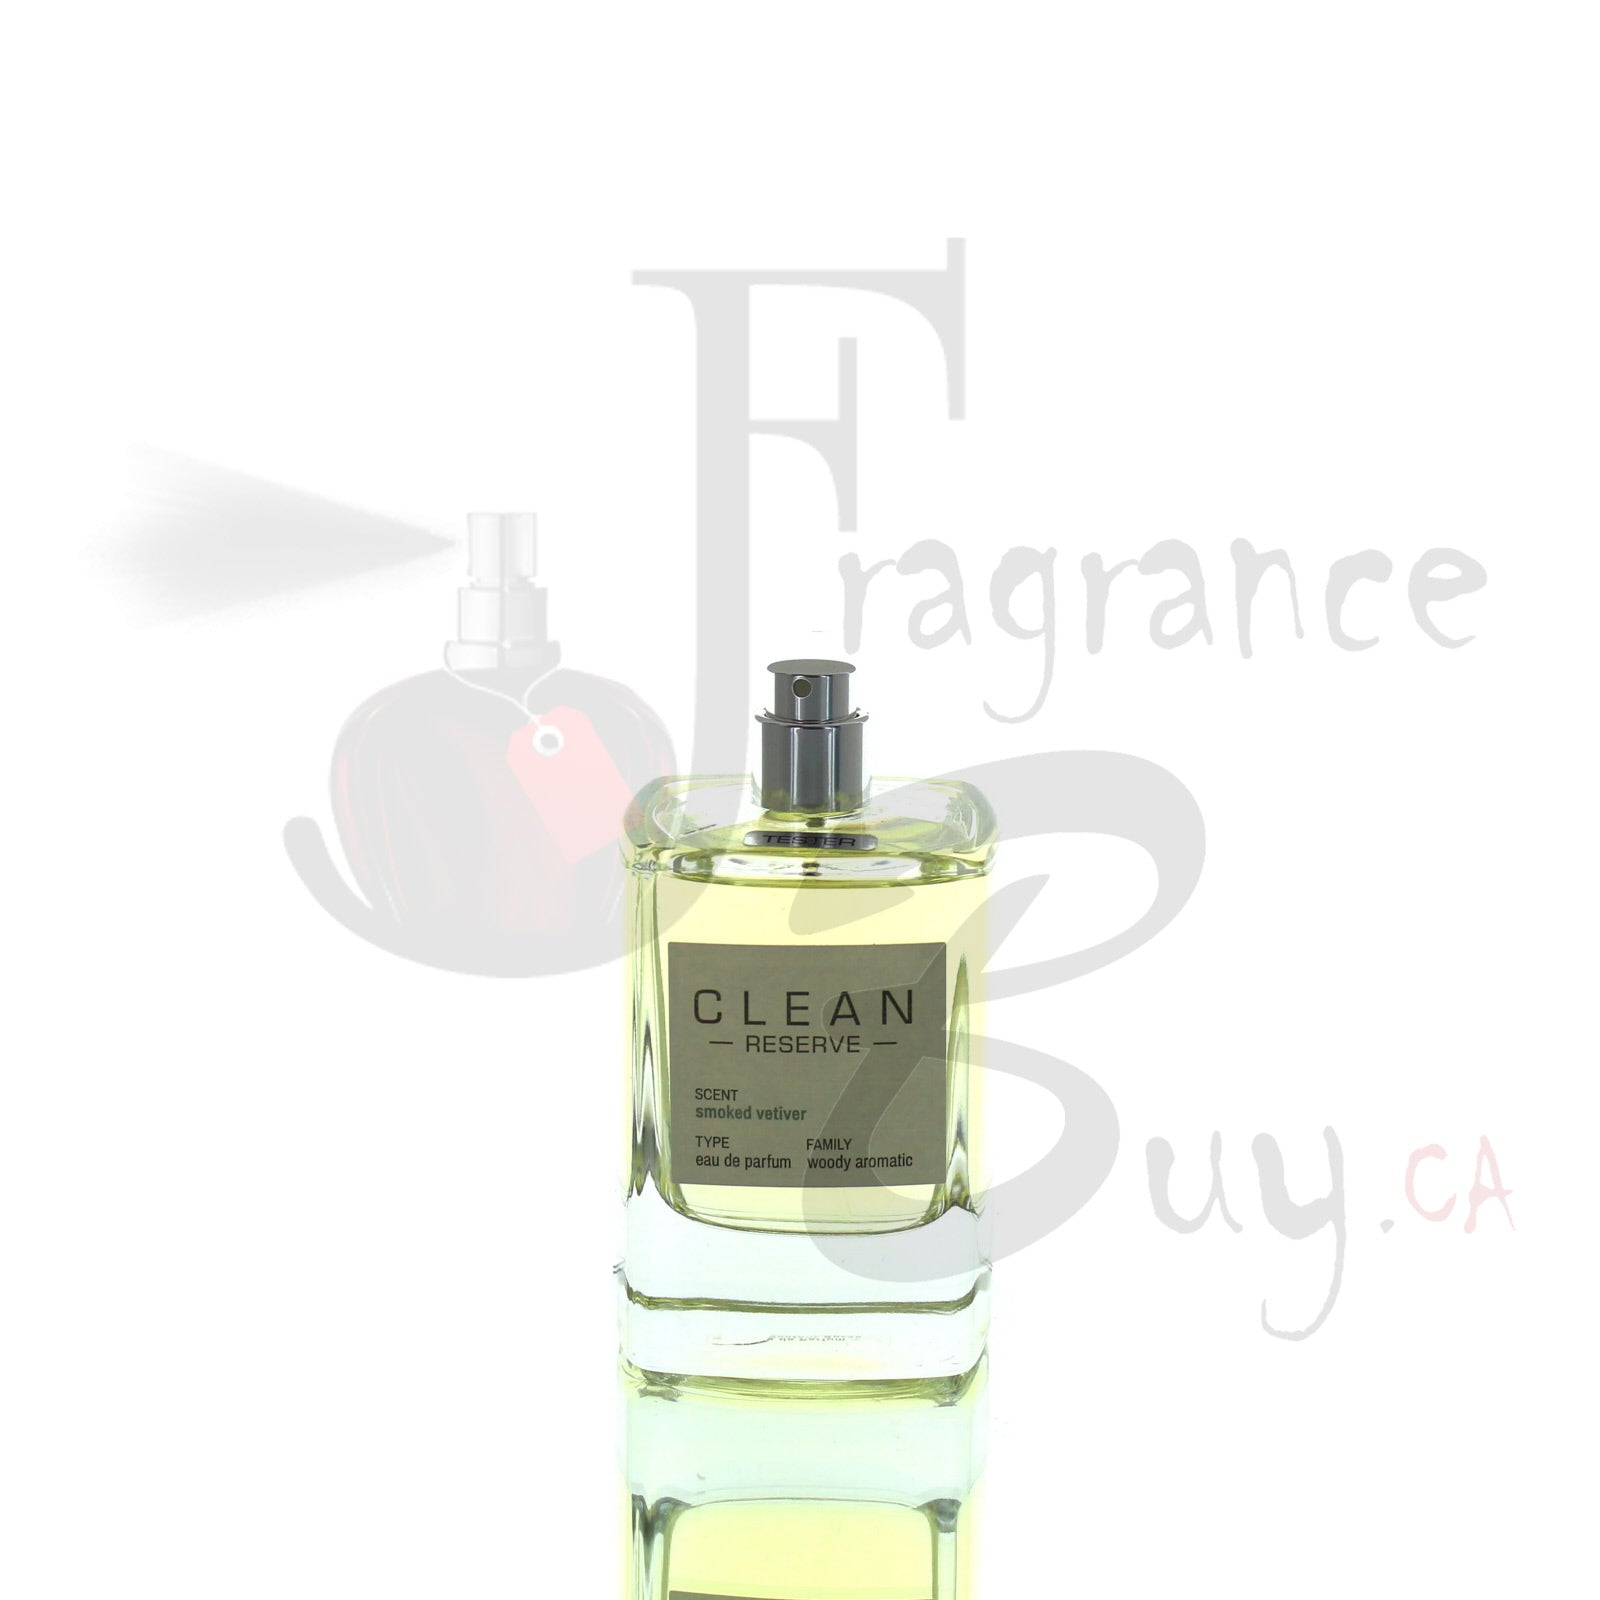 Clean Reserve Smoked Vetiver For Man/Woman